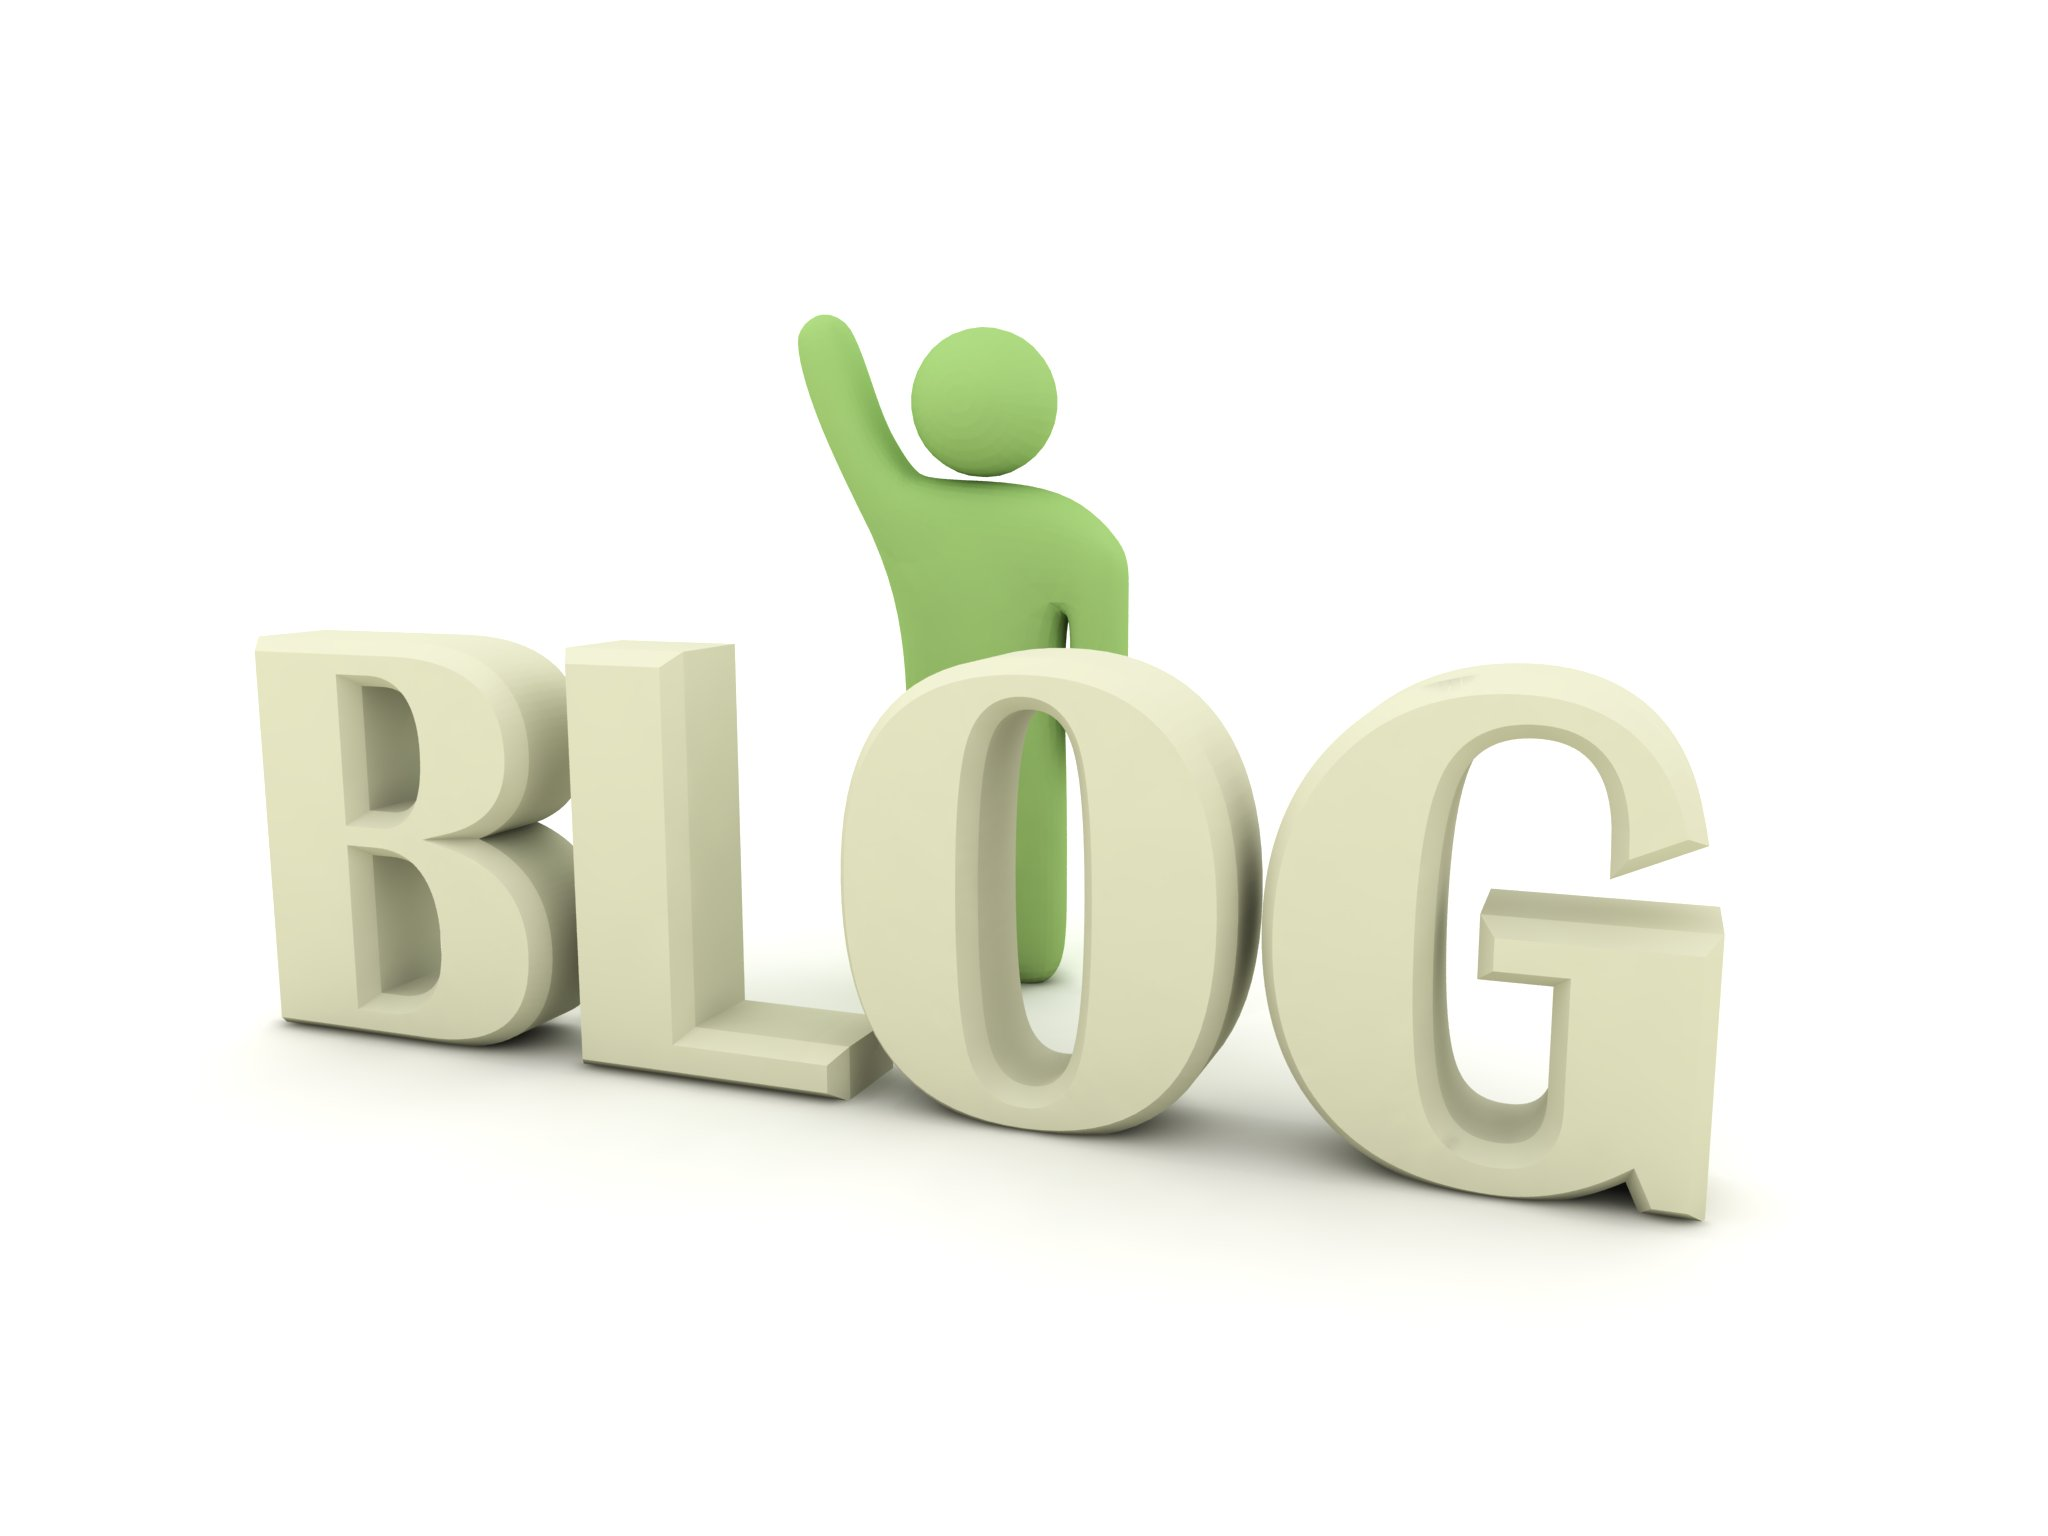 Update your blog regularly